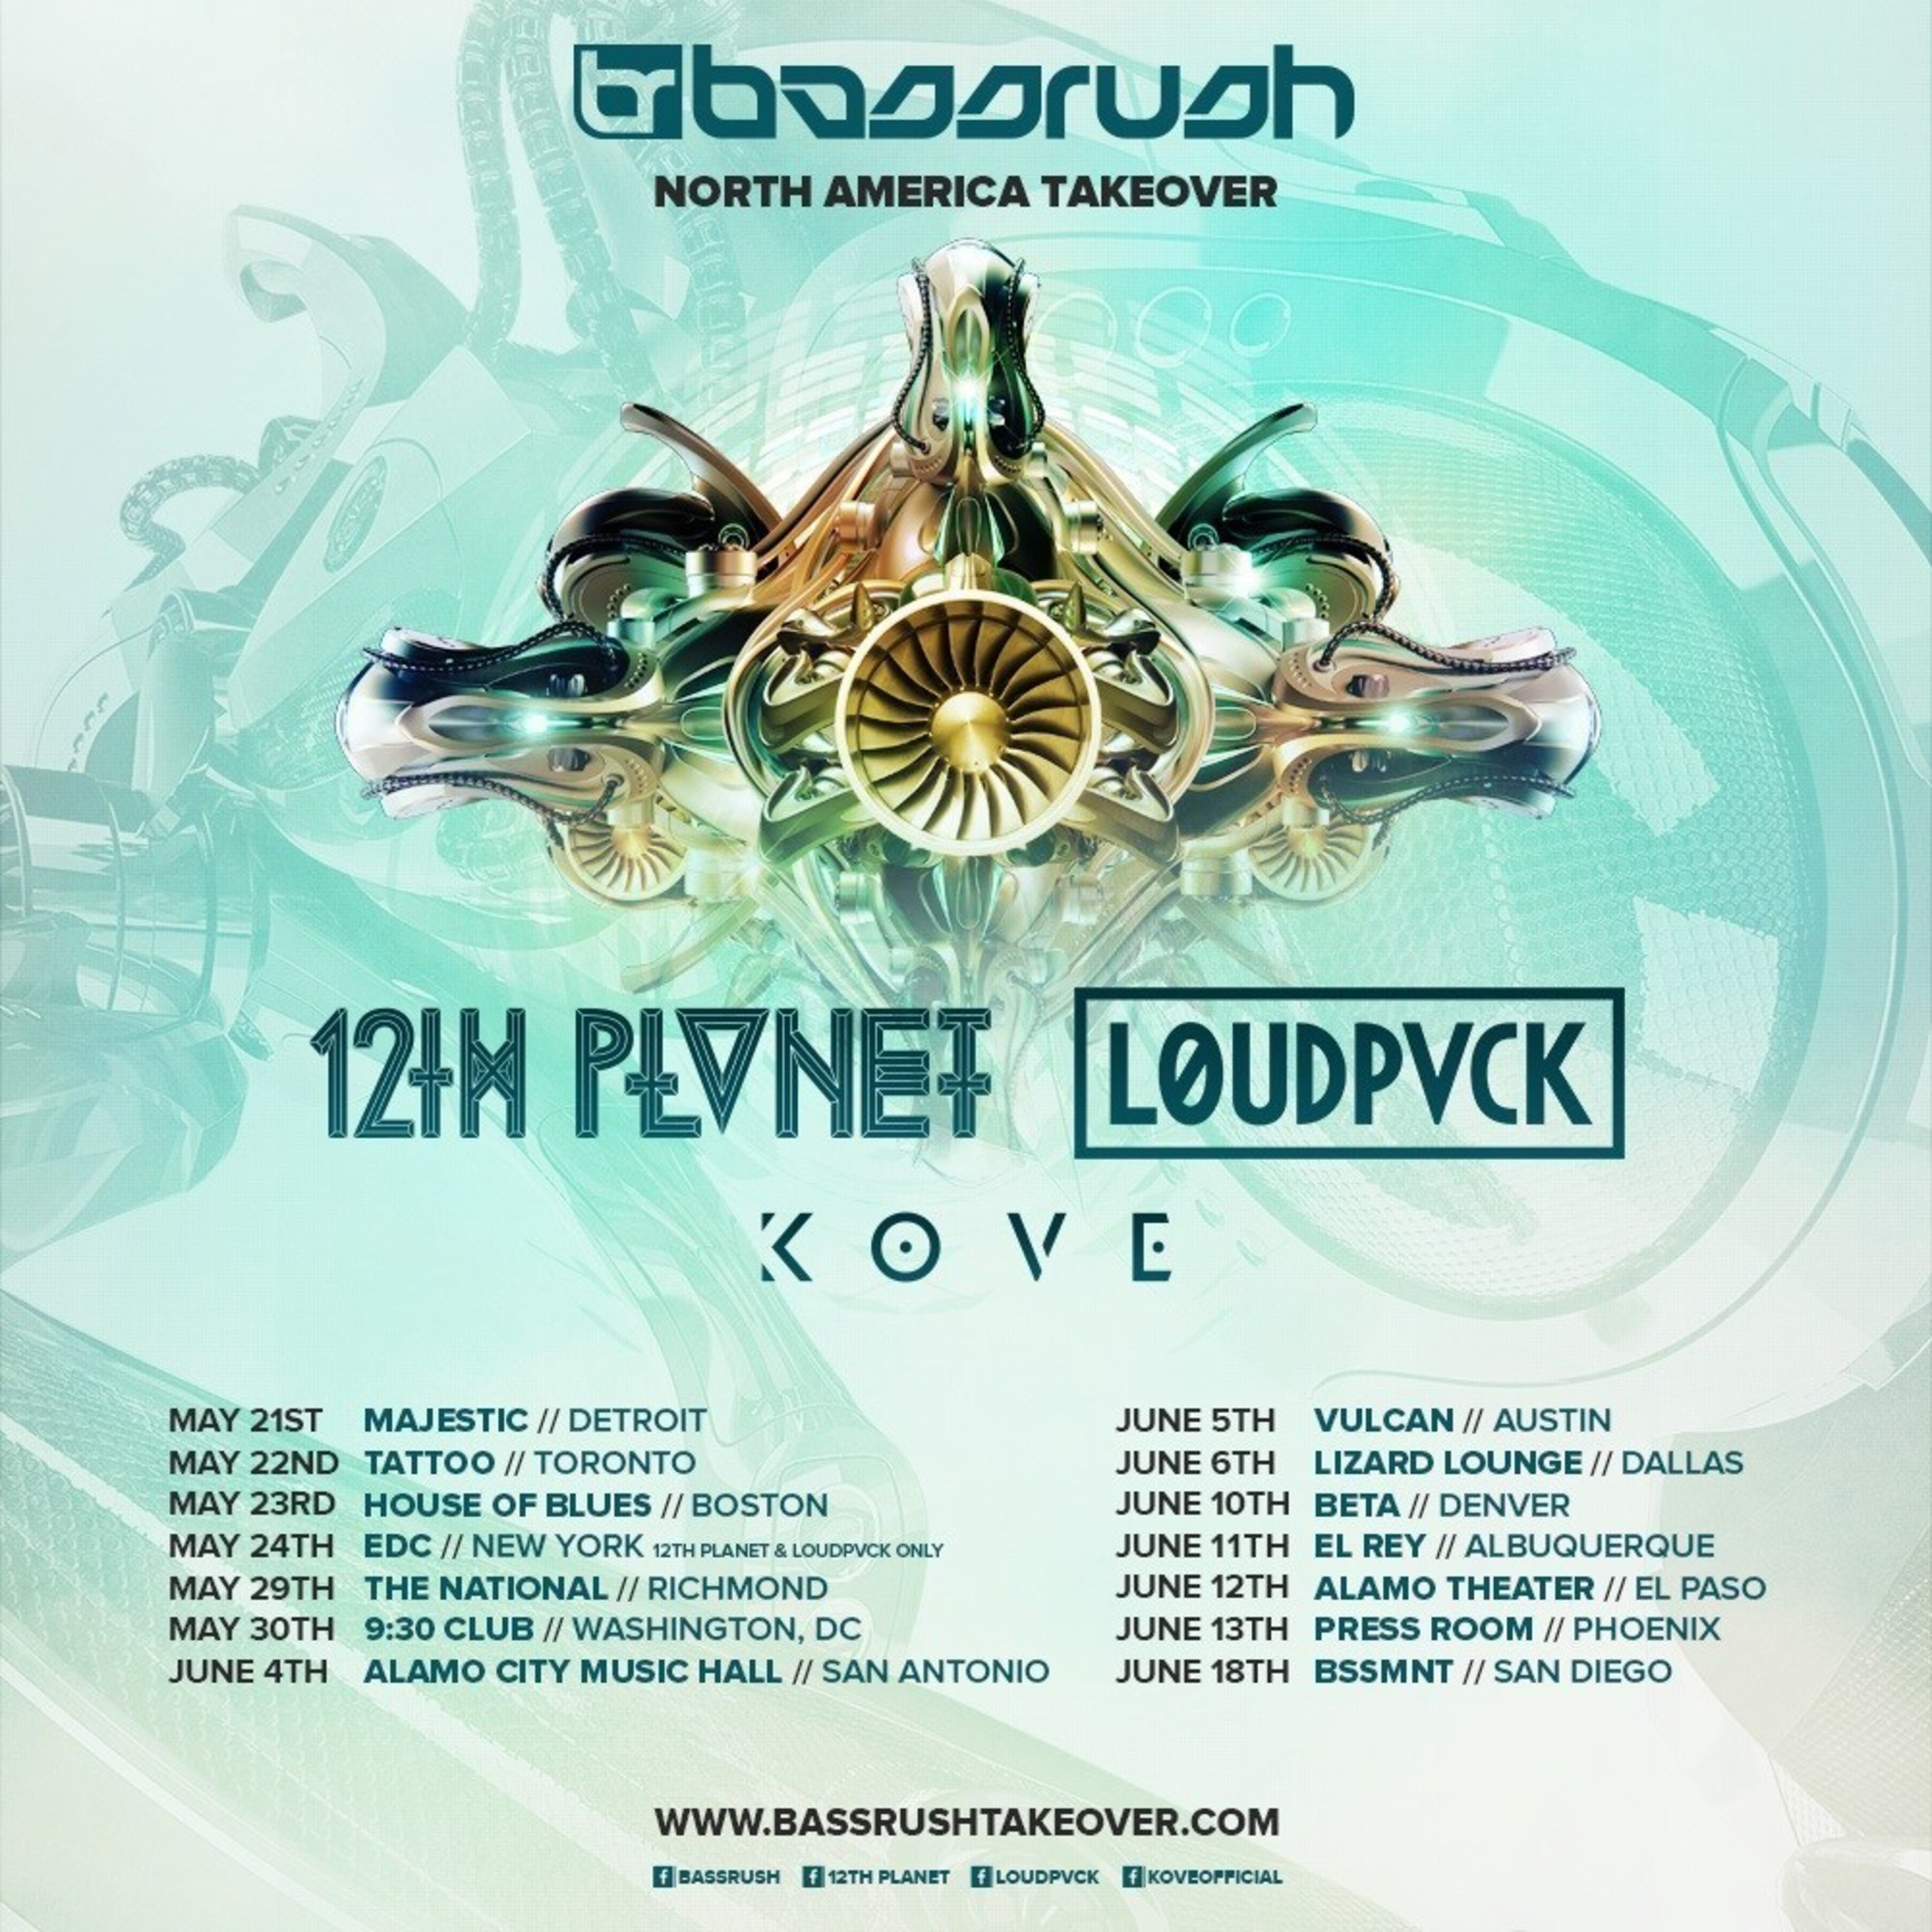 INSOMNIAC ANNOUNCES FIRST EVER BASSRUSH TOUR FEATURING 12TH PLANET, LOUDPVCK AND KOVE